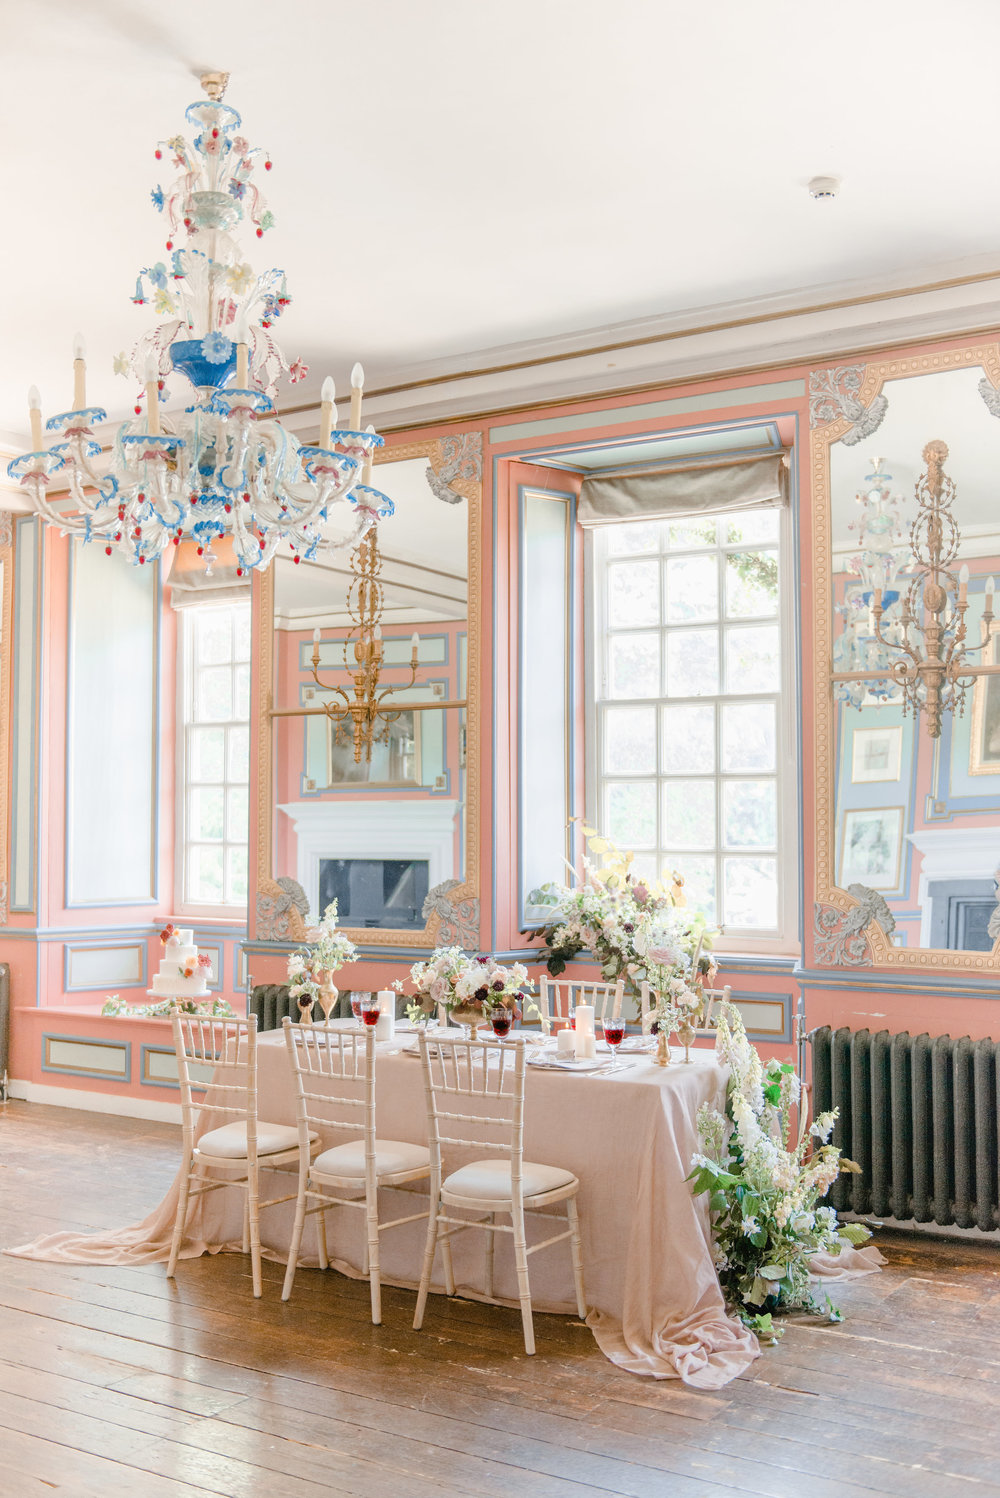 The Timeless Stylist-Elegant and Romantic Wedding Styling-Autumn Tablescape